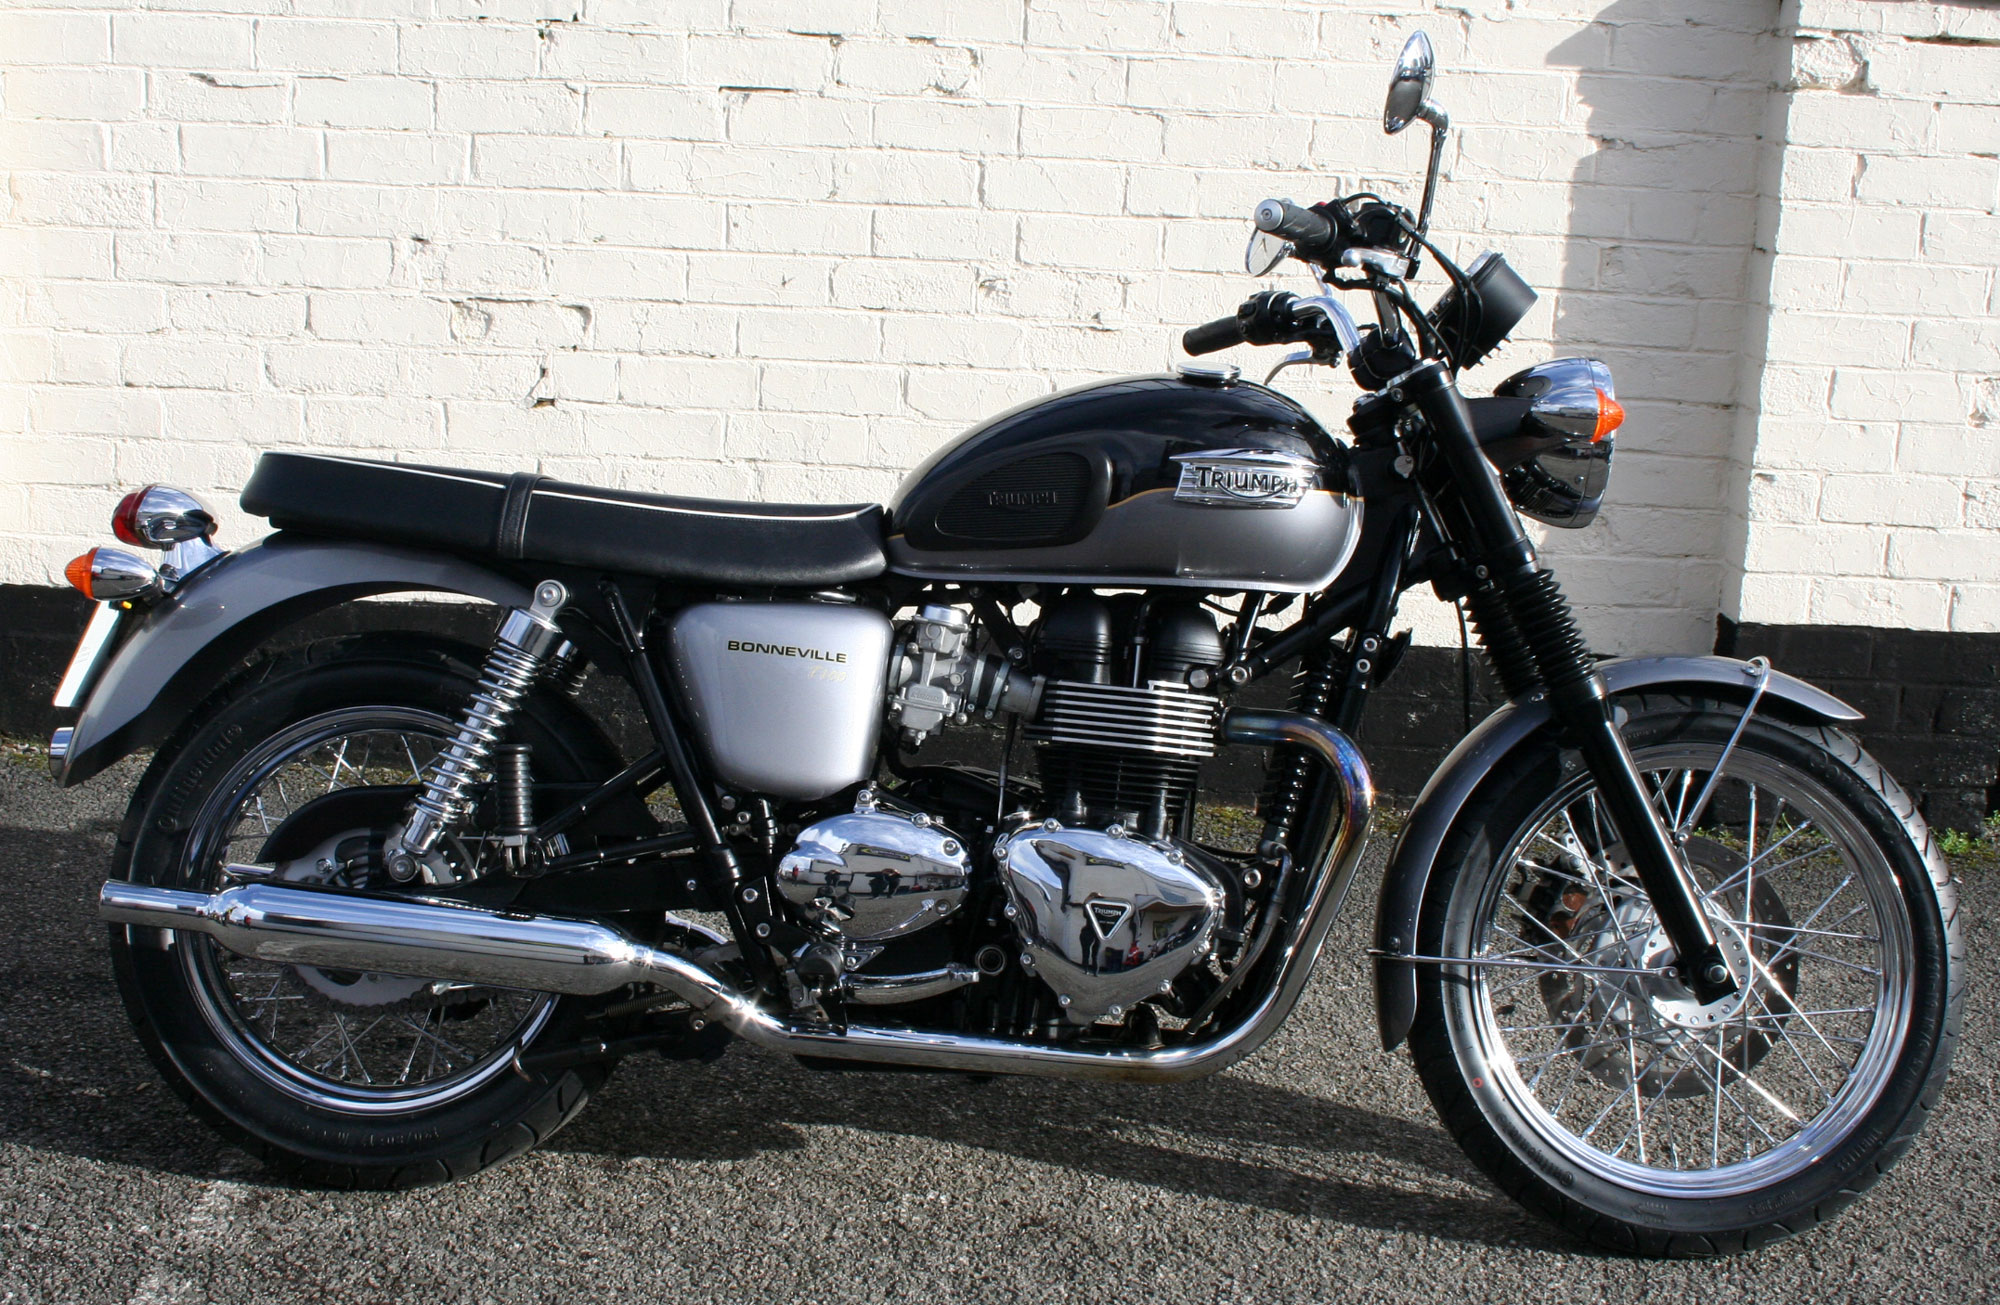 triumph bonneville t100 865cc for sale mansfield nottinghamshire leicestershire derbyshire. Black Bedroom Furniture Sets. Home Design Ideas